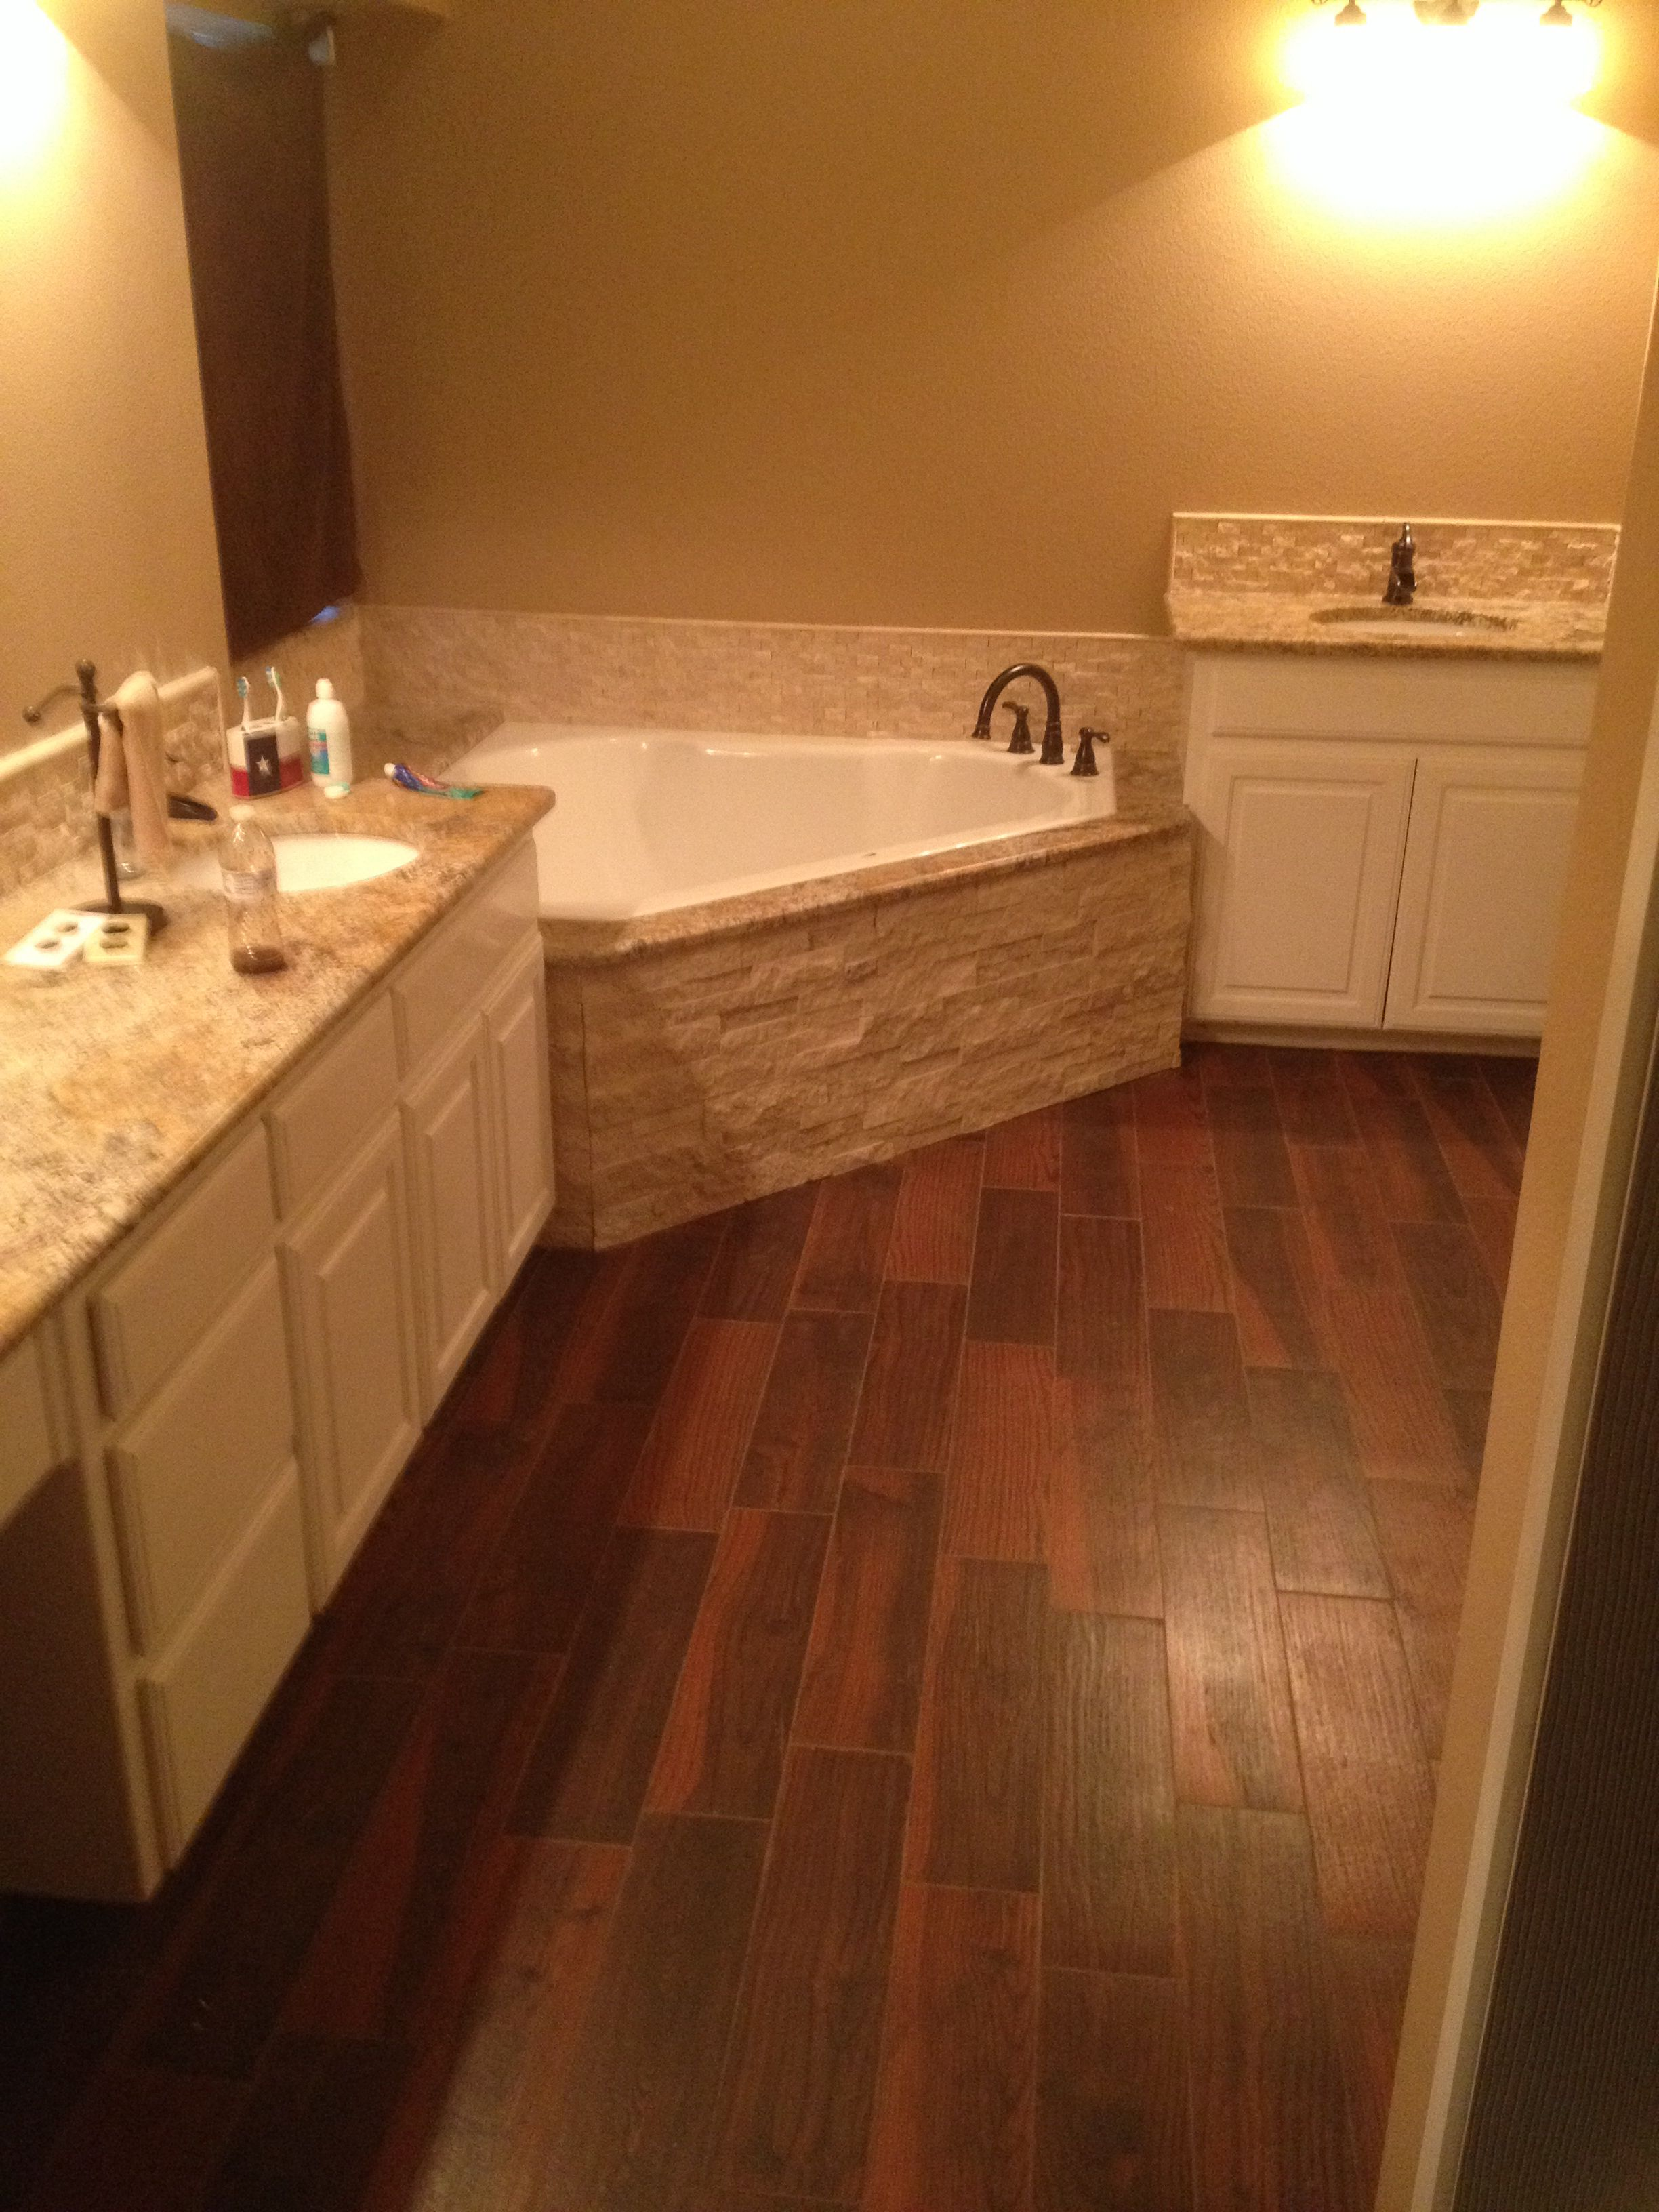 Bathroom remodel - not sold on stones on tub....but LOVE the floor